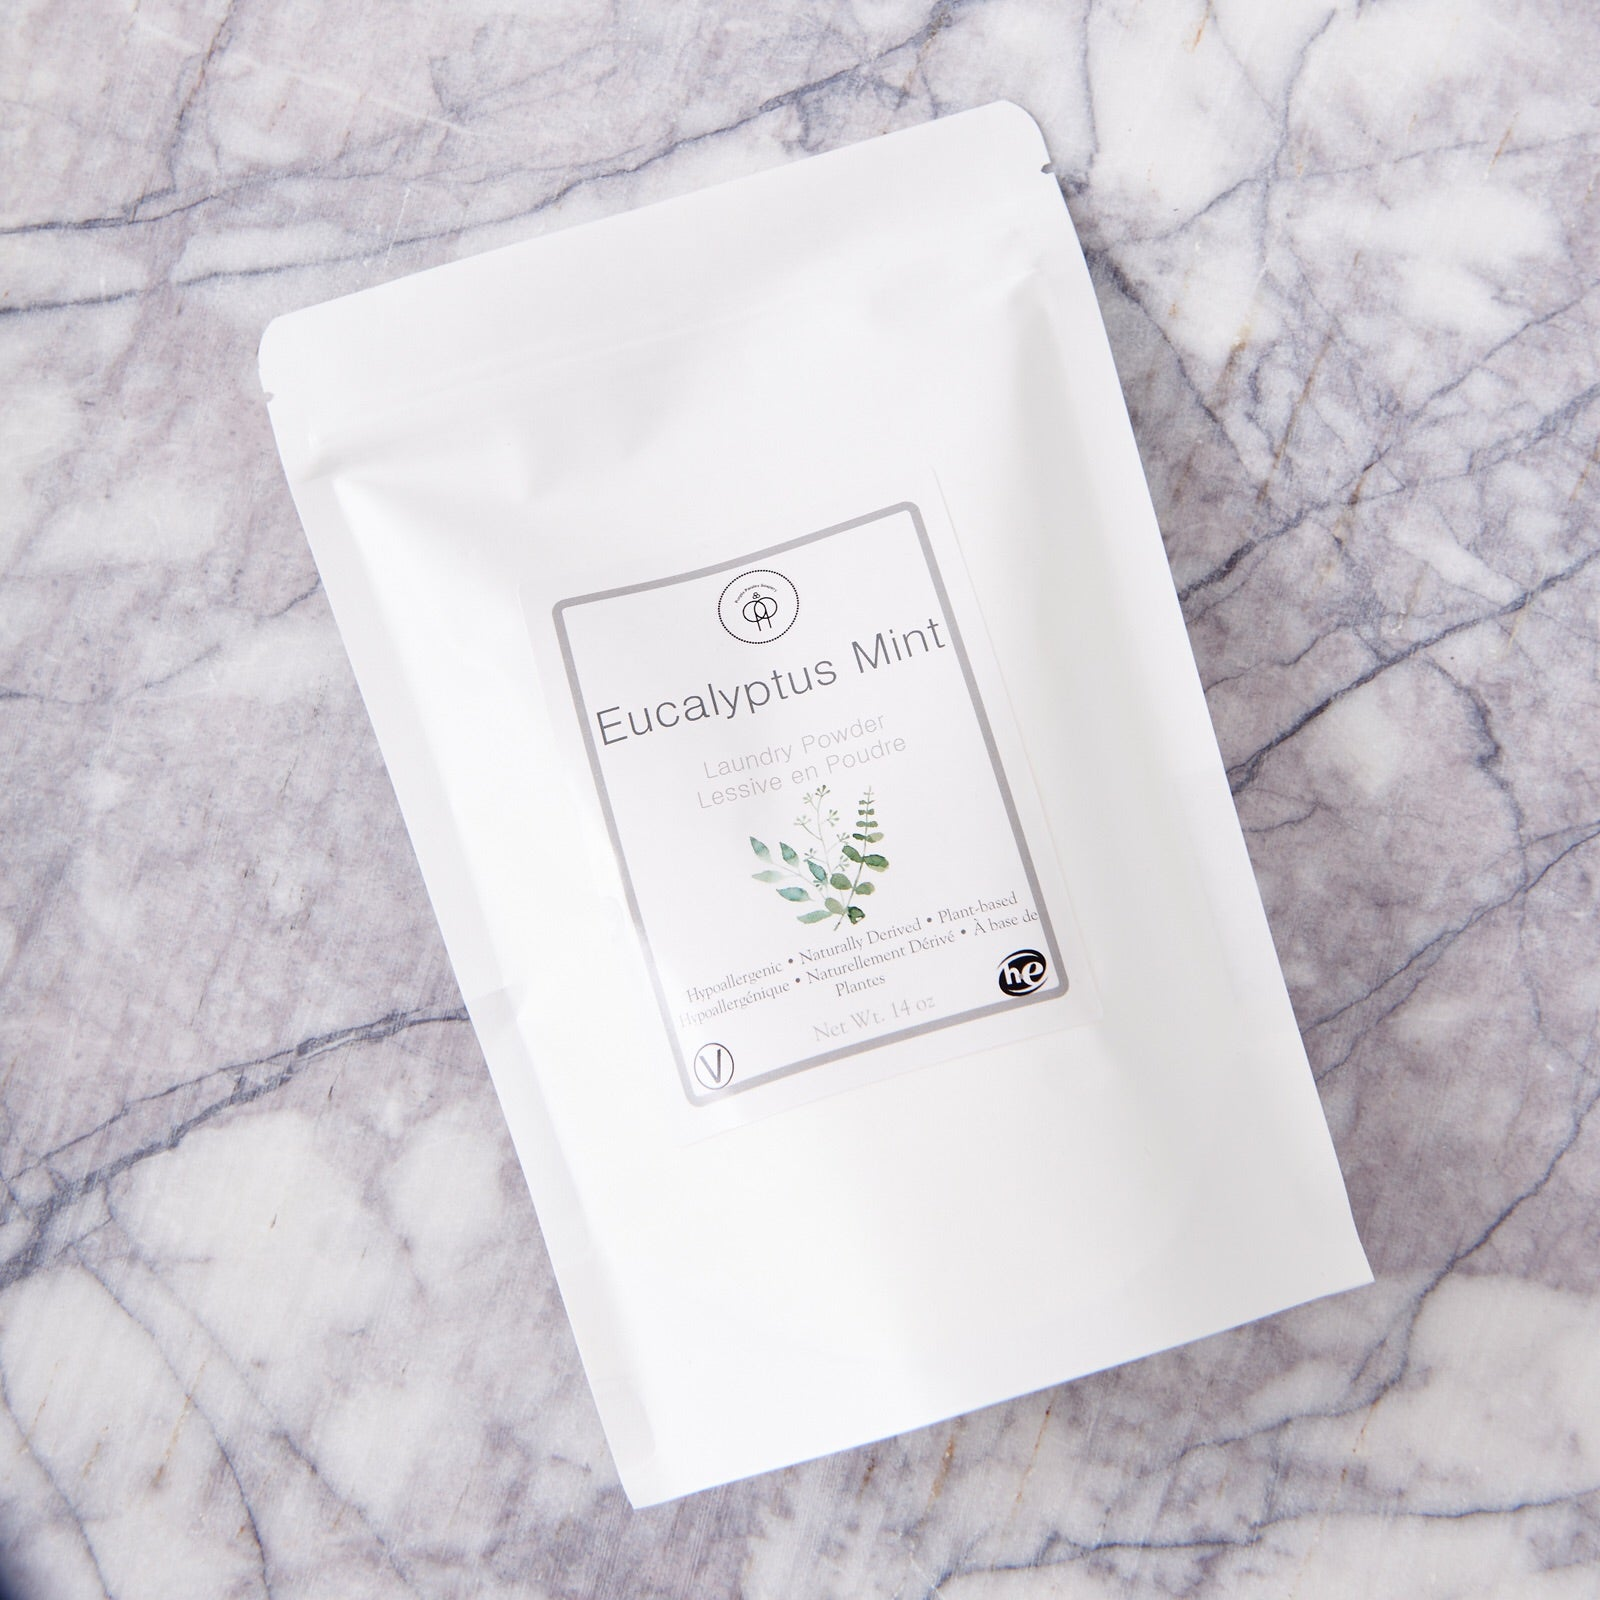 Eucalyptus Mint Laundry Powder